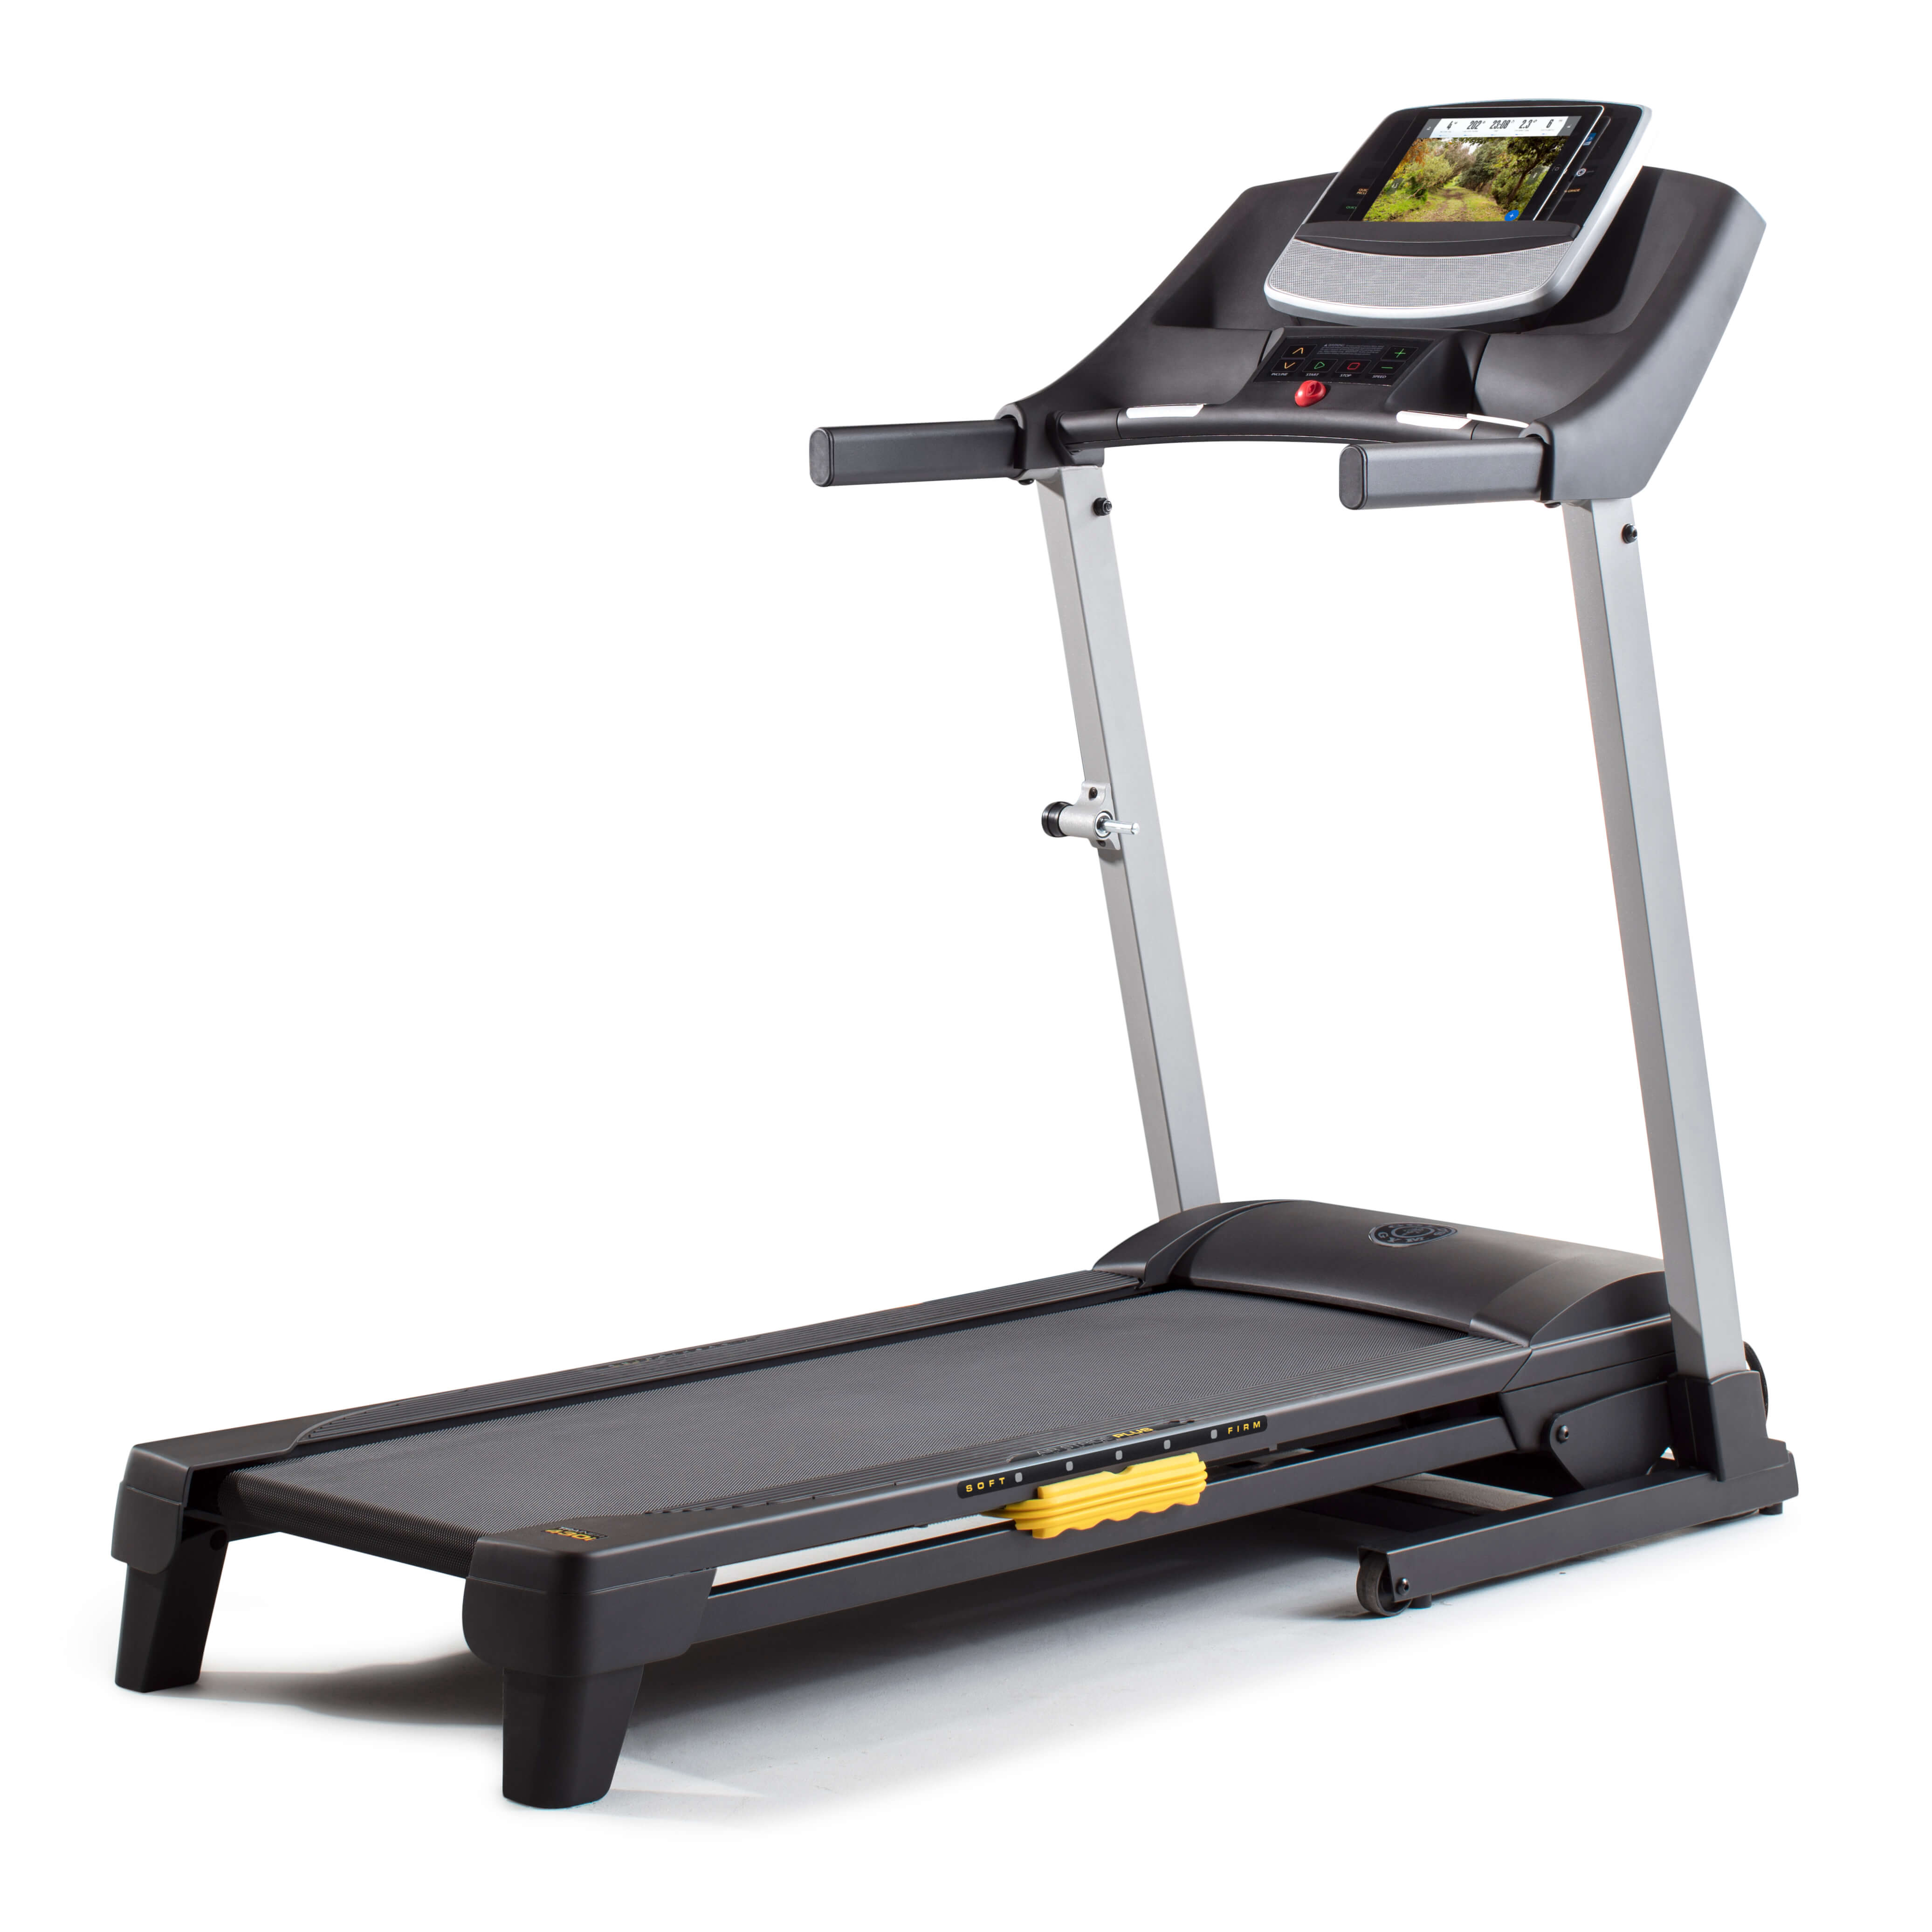 Magnificent Golds Gym Trainer 430I Treadmill Compatible With Ifit Coach Gmtry Best Dining Table And Chair Ideas Images Gmtryco